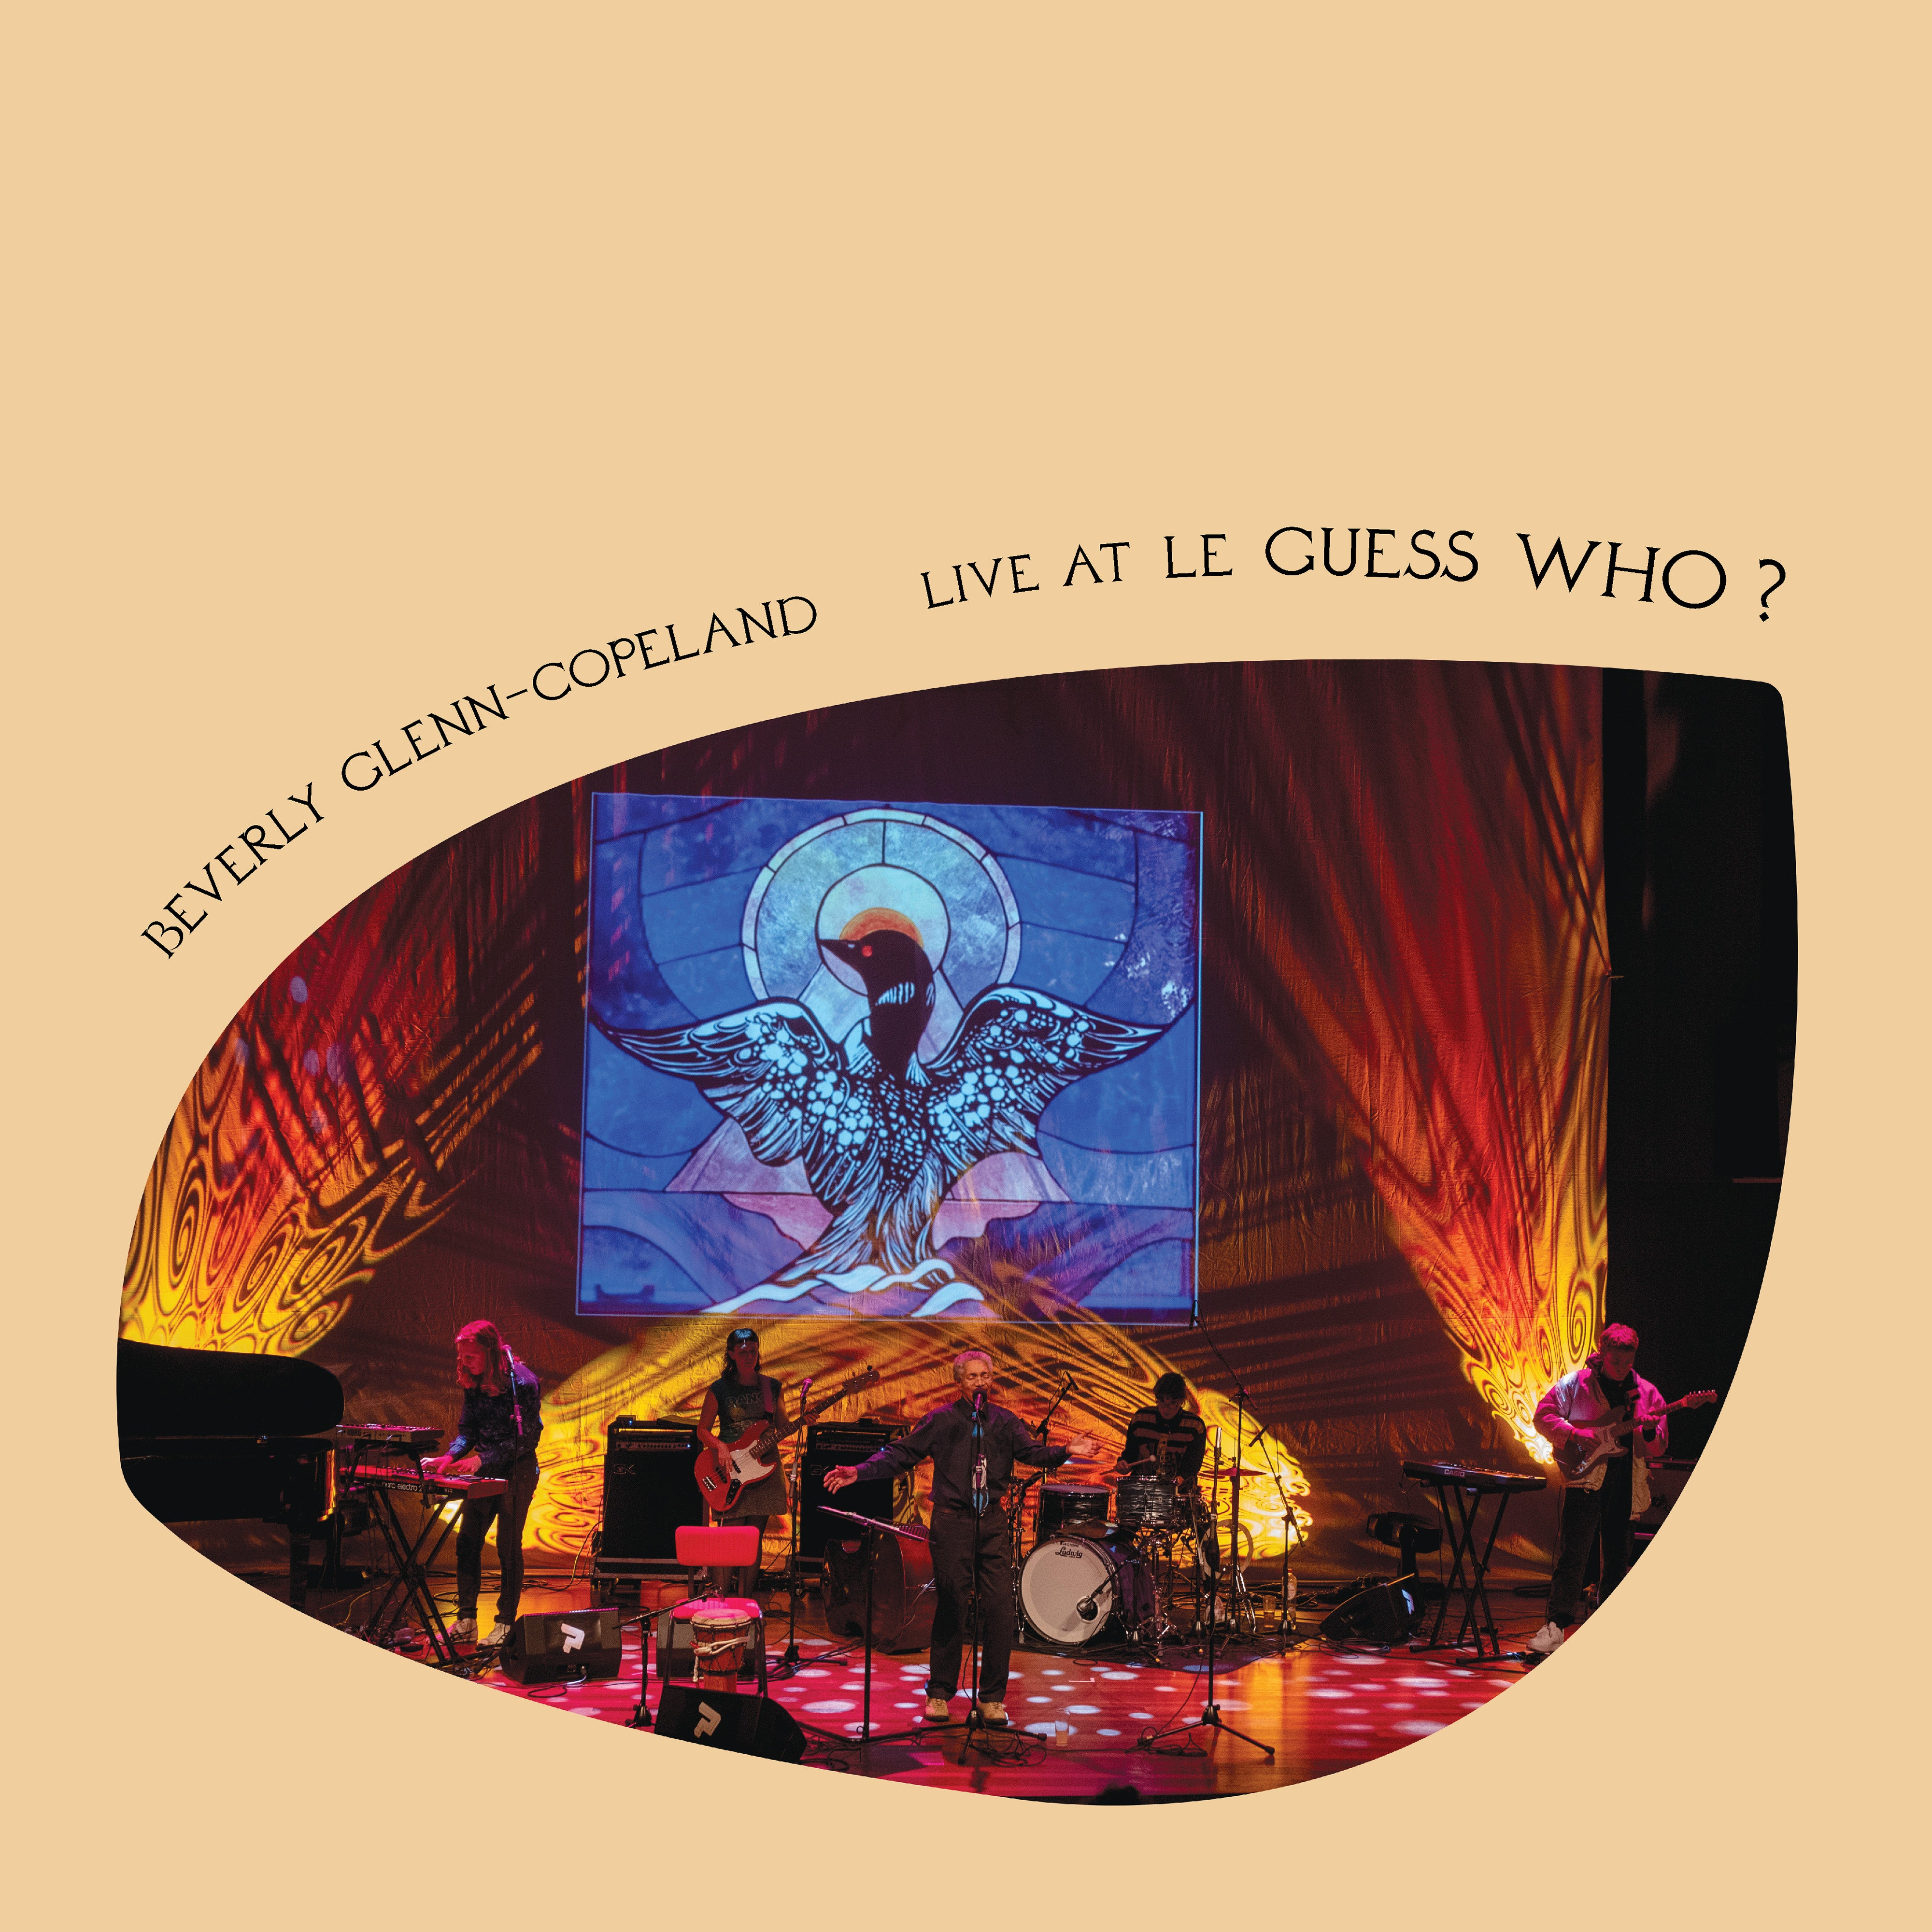 Beverly Glenn-Copeland - Live At Le Guess Who? (RSD 2020 Black Friday) 180g Clear Colour Vinyl Record Album